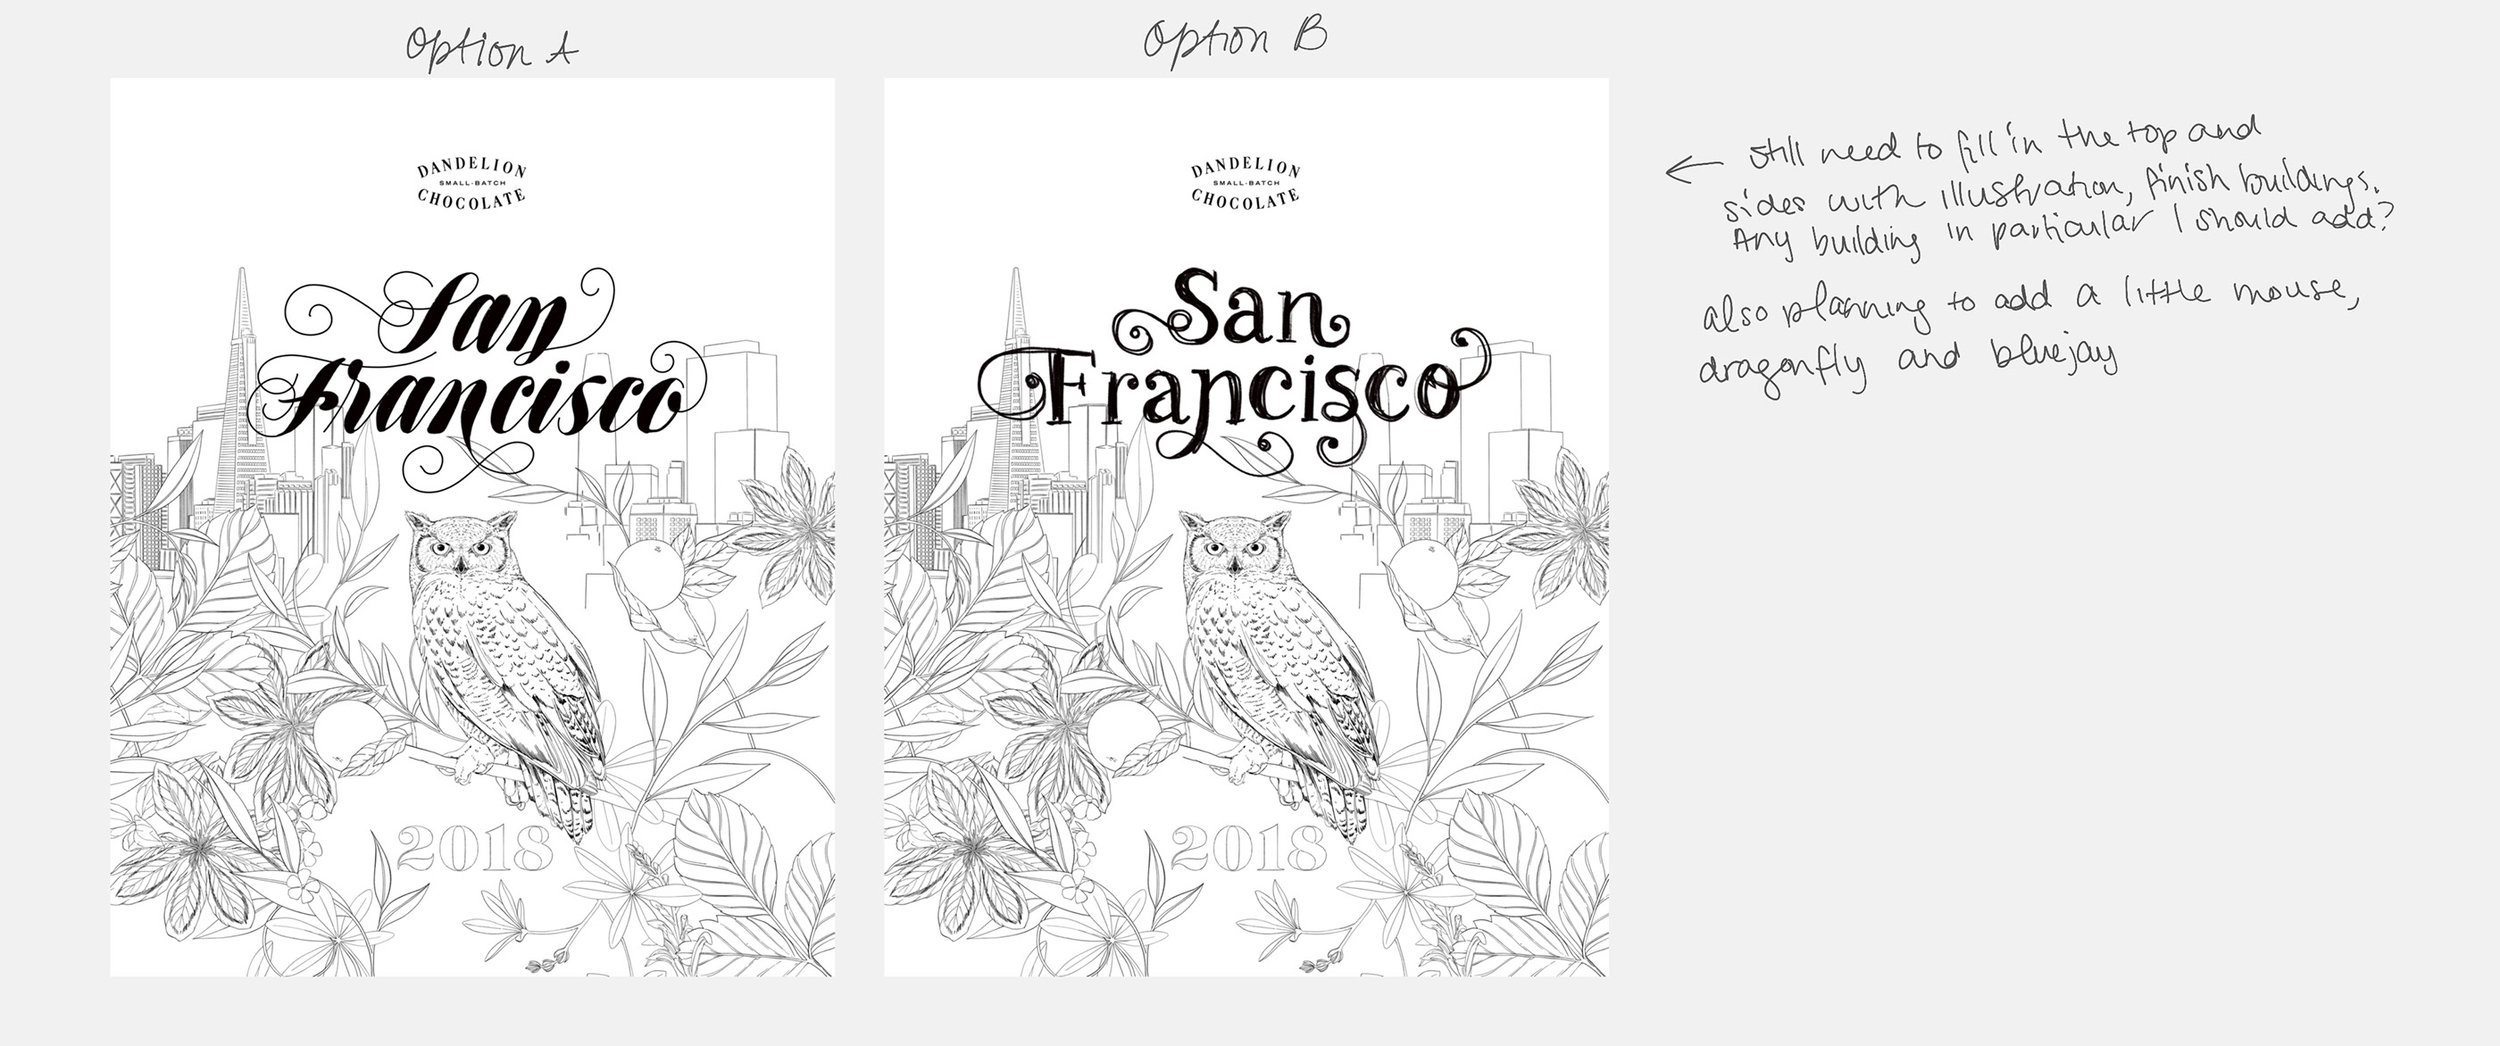 Very early illustration comps, lettering designed by Lisa Quine